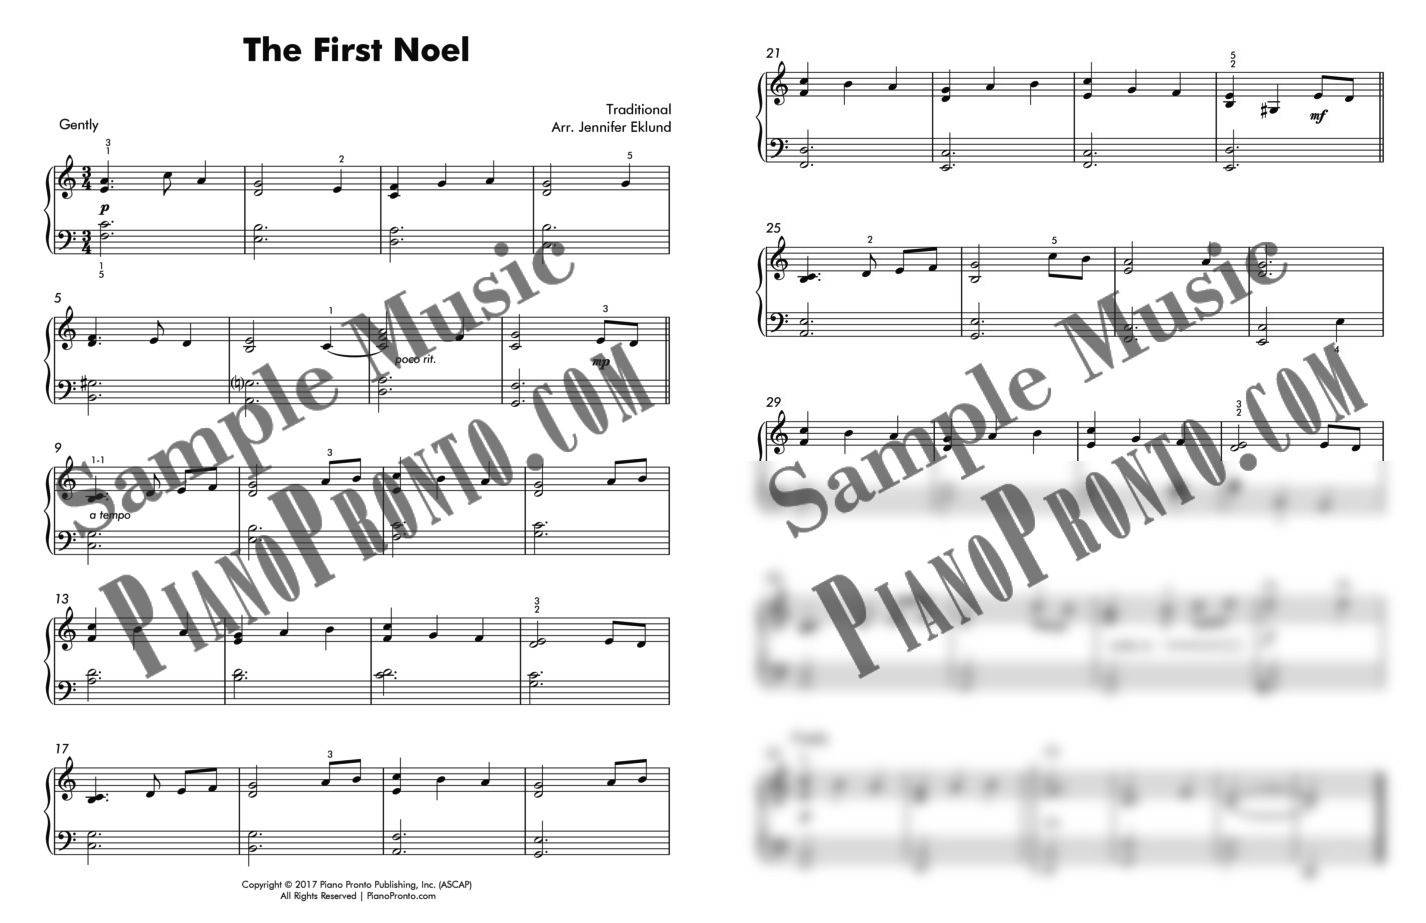 noel 2018 pps The First Noel   Lyrical Jazz Solo | Sheet Music | Piano Pronto  noel 2018 pps